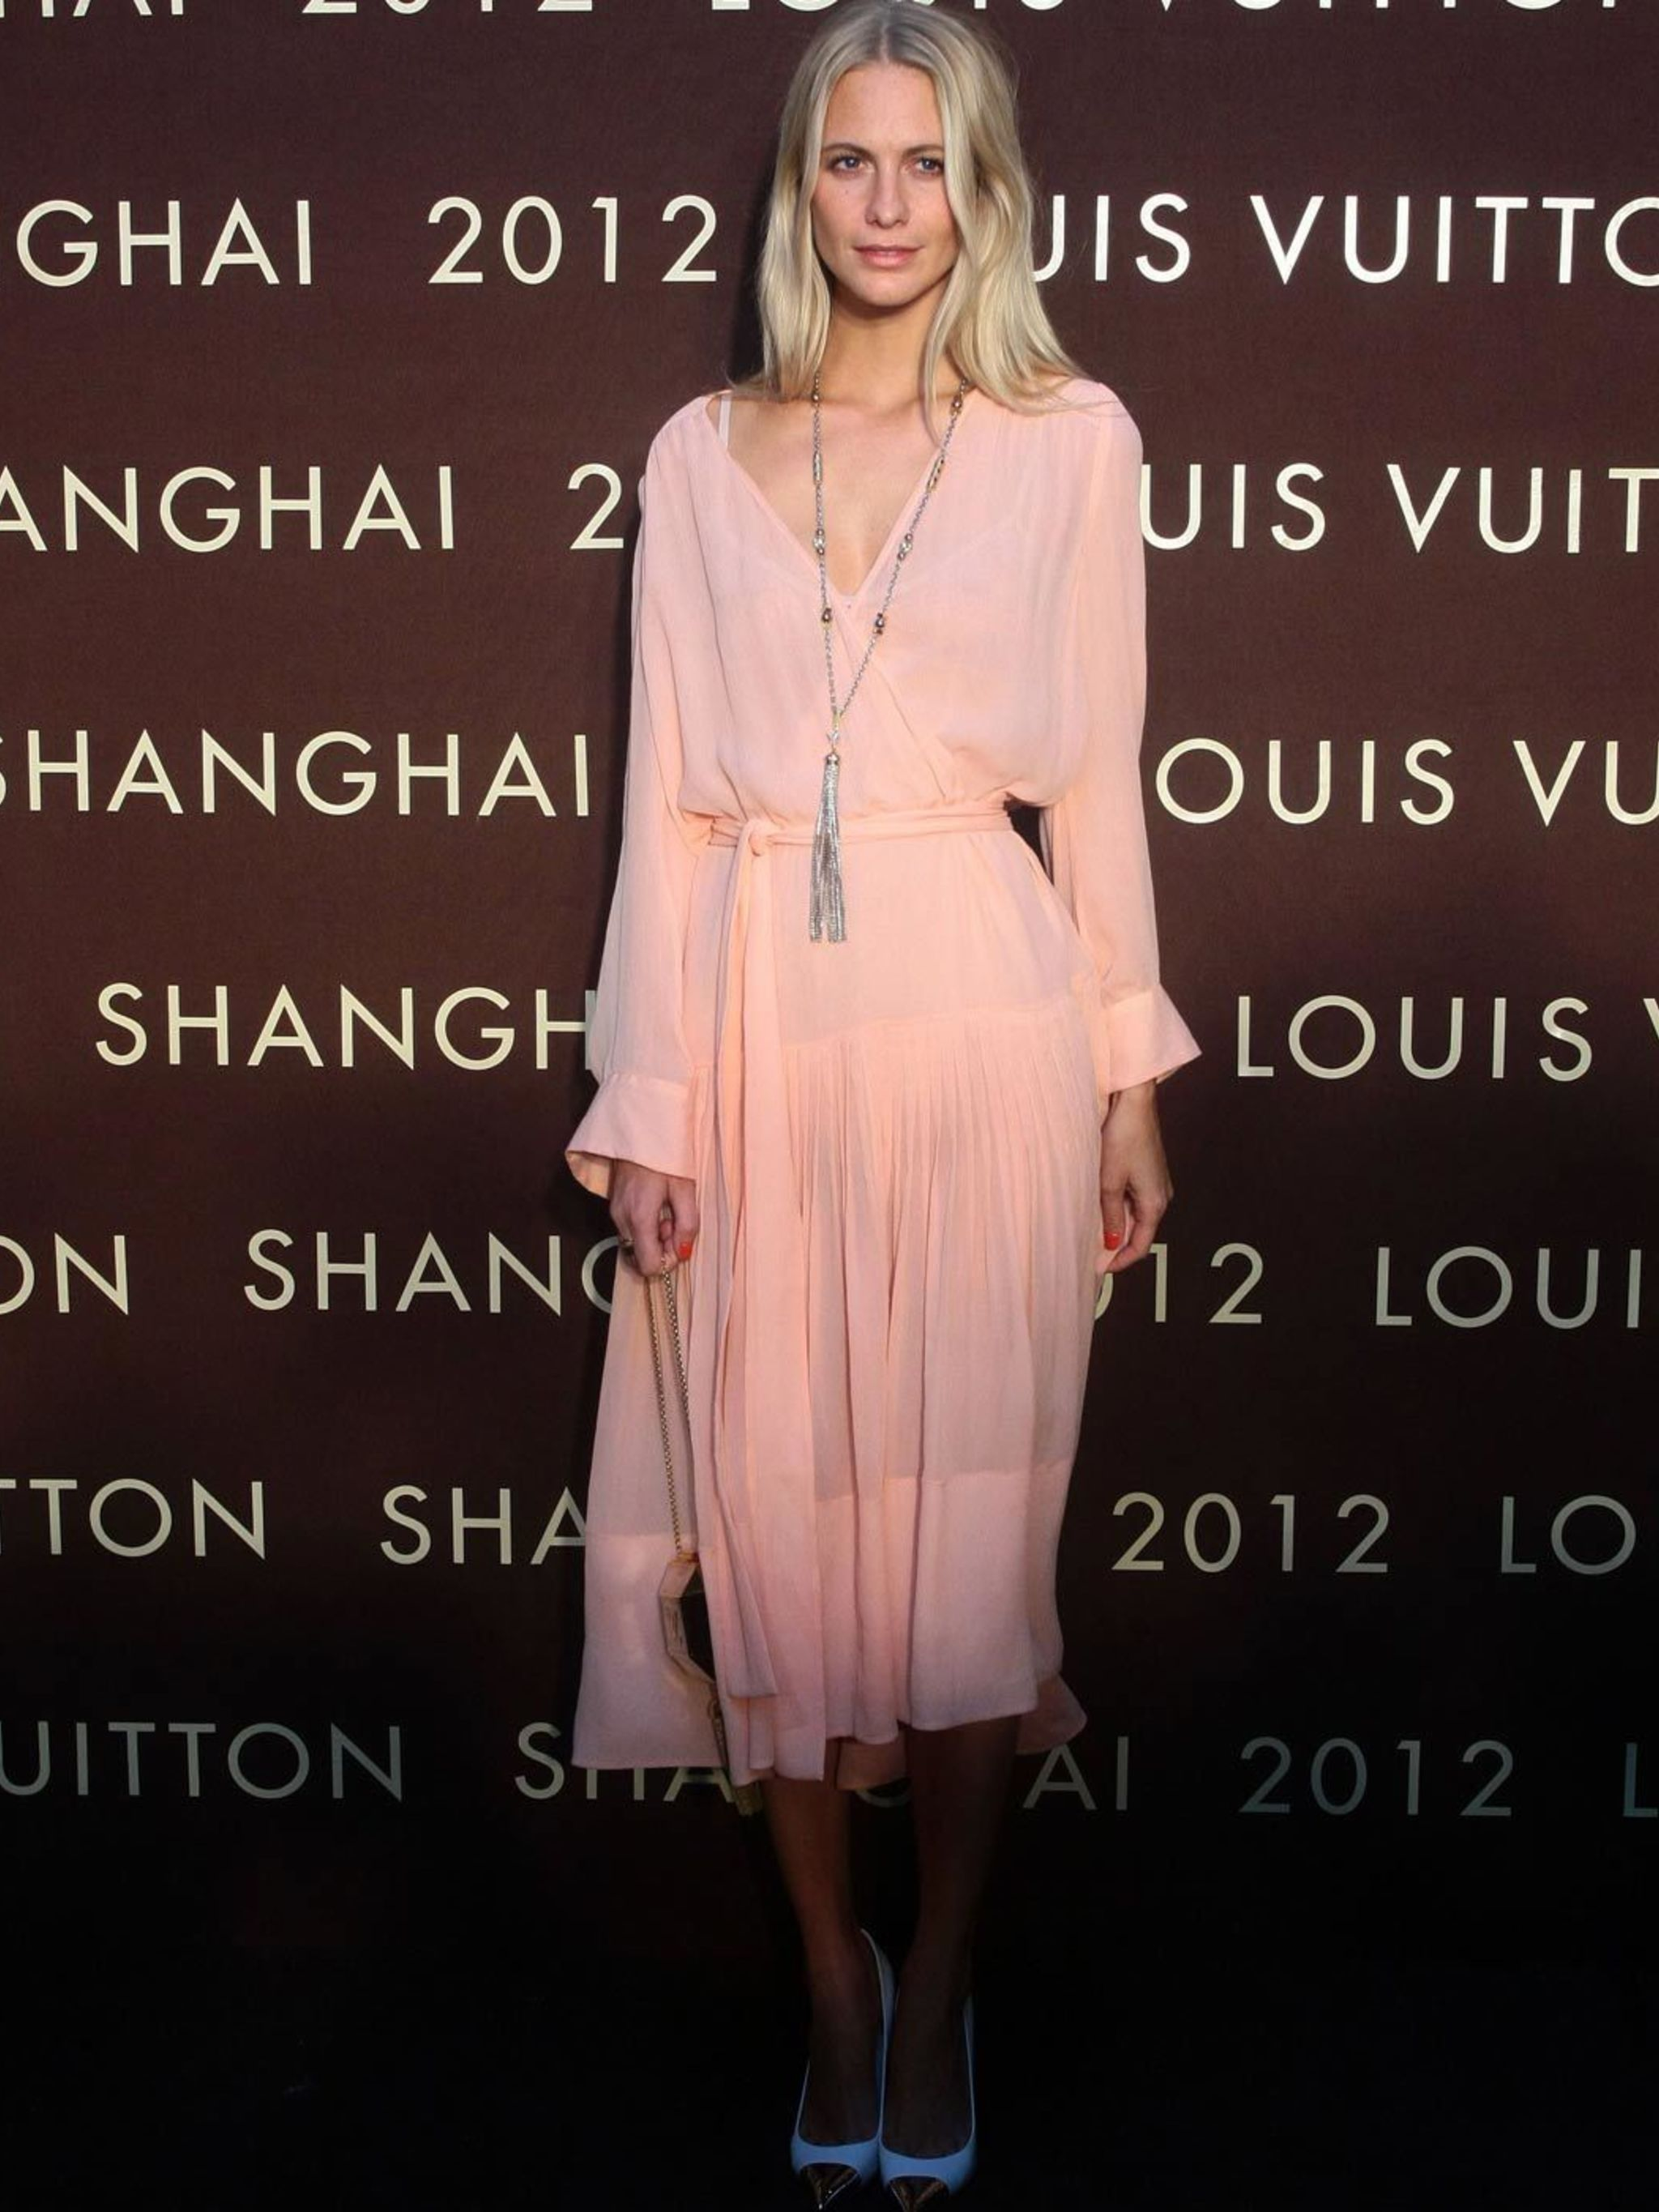 Forum on this topic: Poppy Delevigne for Louis Vuitton Summer 2012 , poppy-delevigne-for-louis-vuitton-summer-2012/